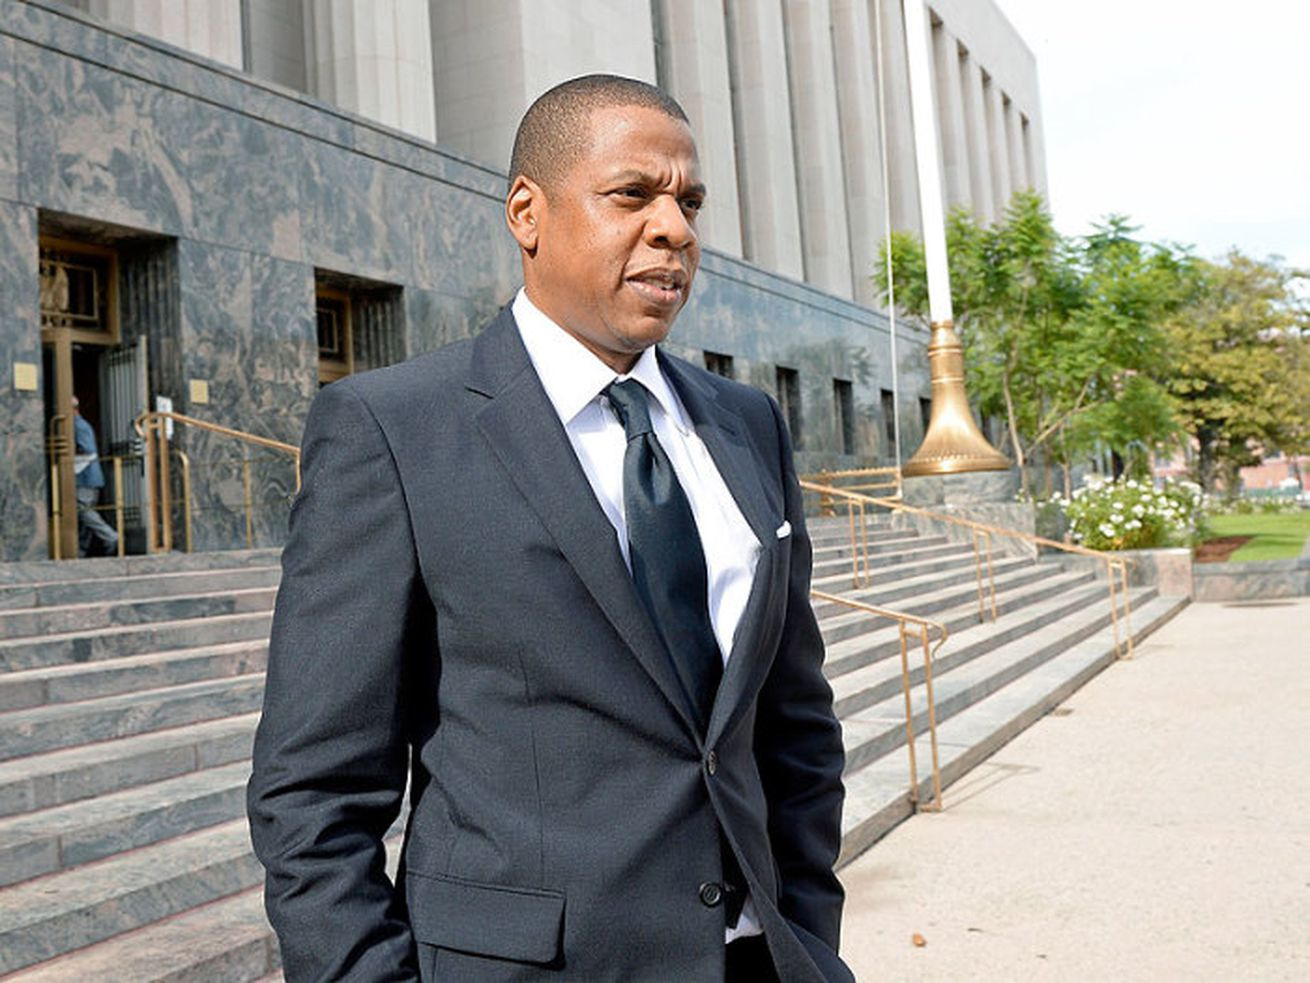 JAY-Z's Shawn Carter Foundation to hold inaugural weekend gala